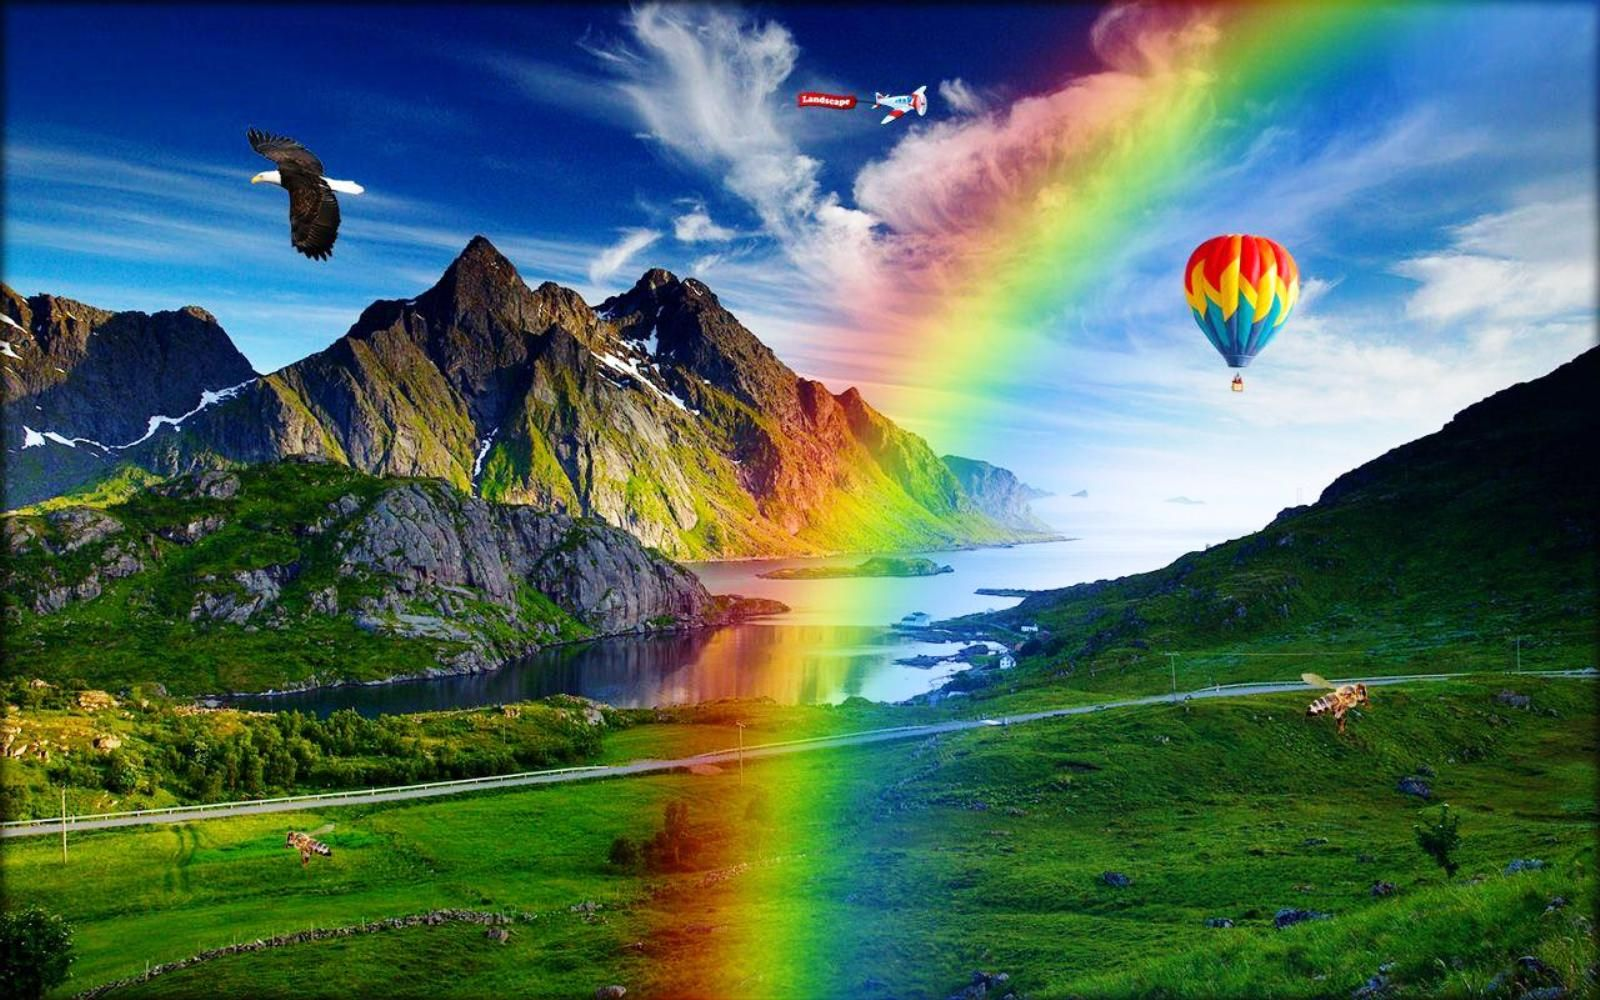 Air Balloon Rainbow Mountains Nature Wallpaper Wallpapers Hd Hd Nature Wallpapers Beautiful Nature Wallpaper Nature Wallpaper